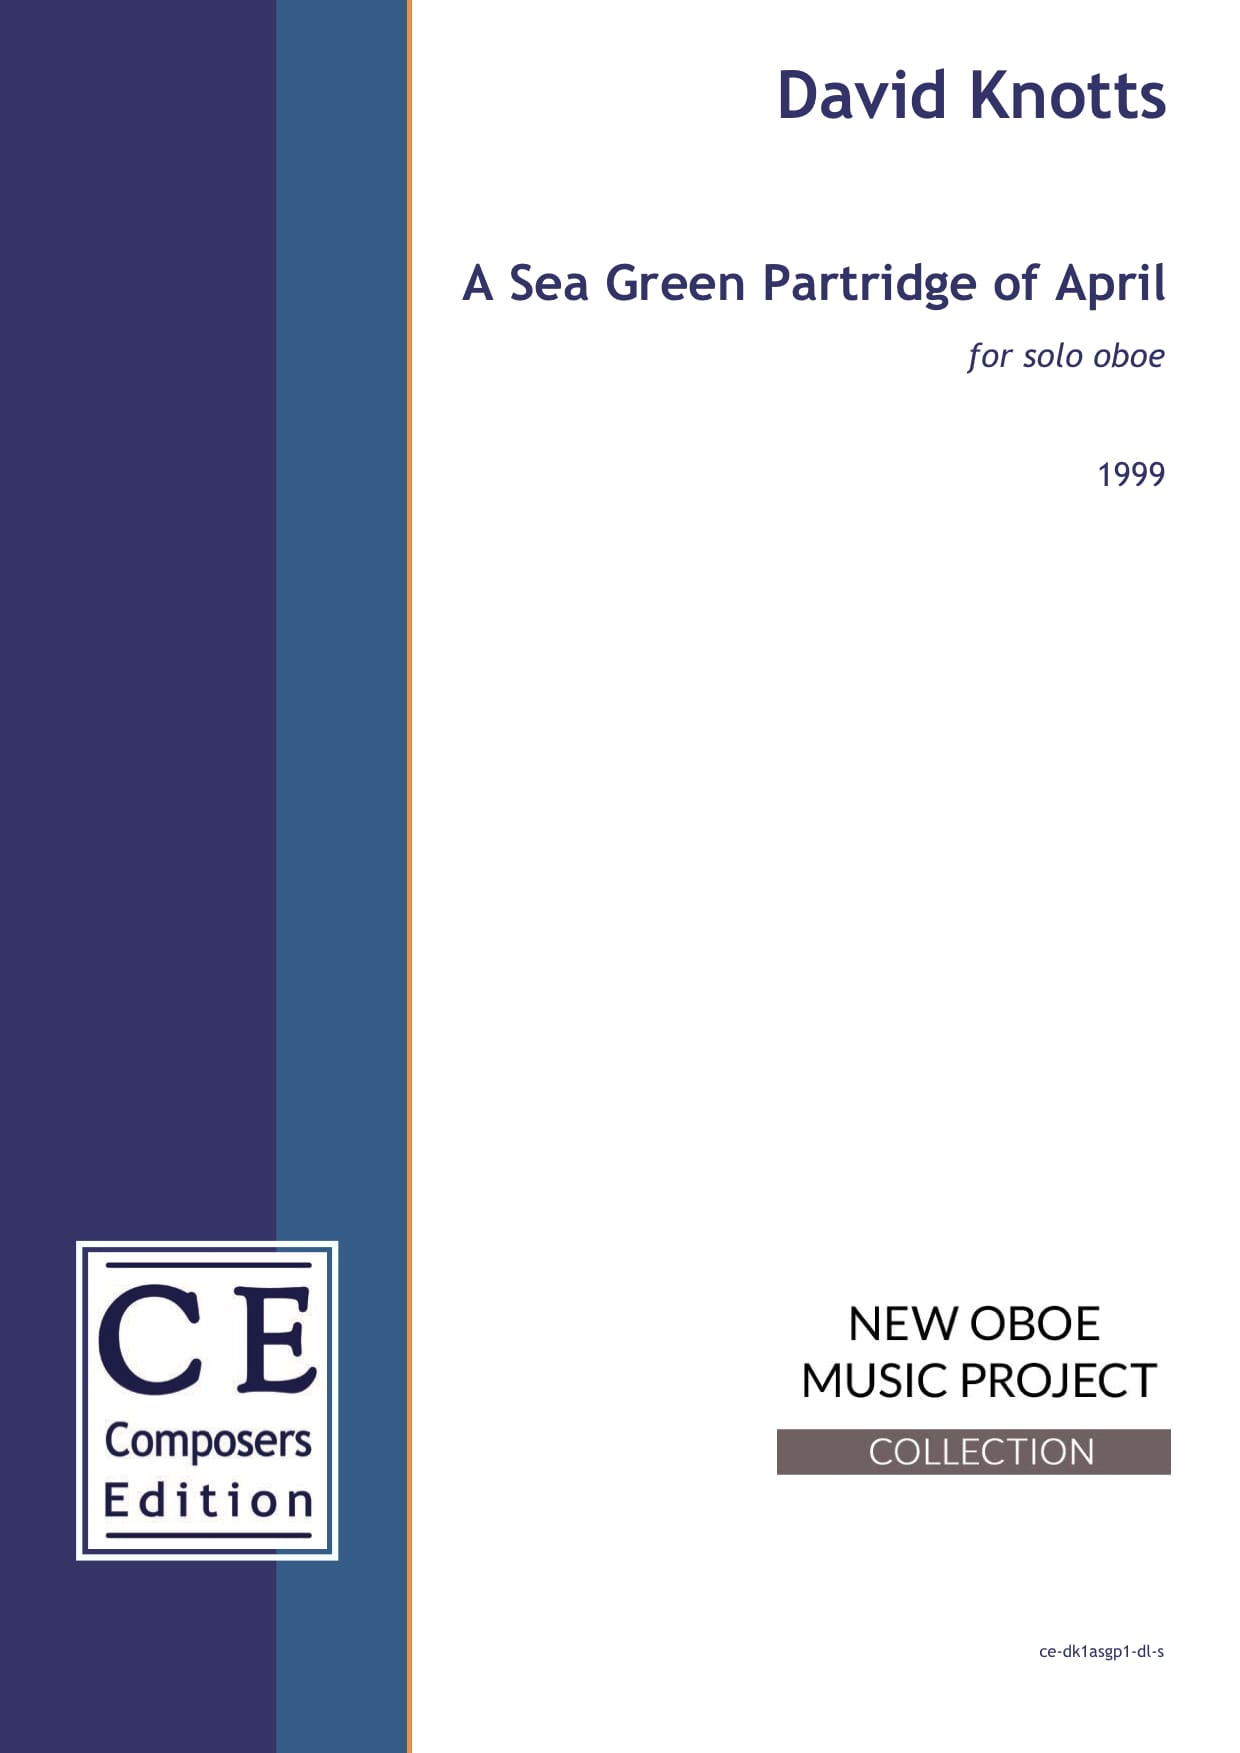 David Knotts: A Sea Green Partridge of April for solo oboe